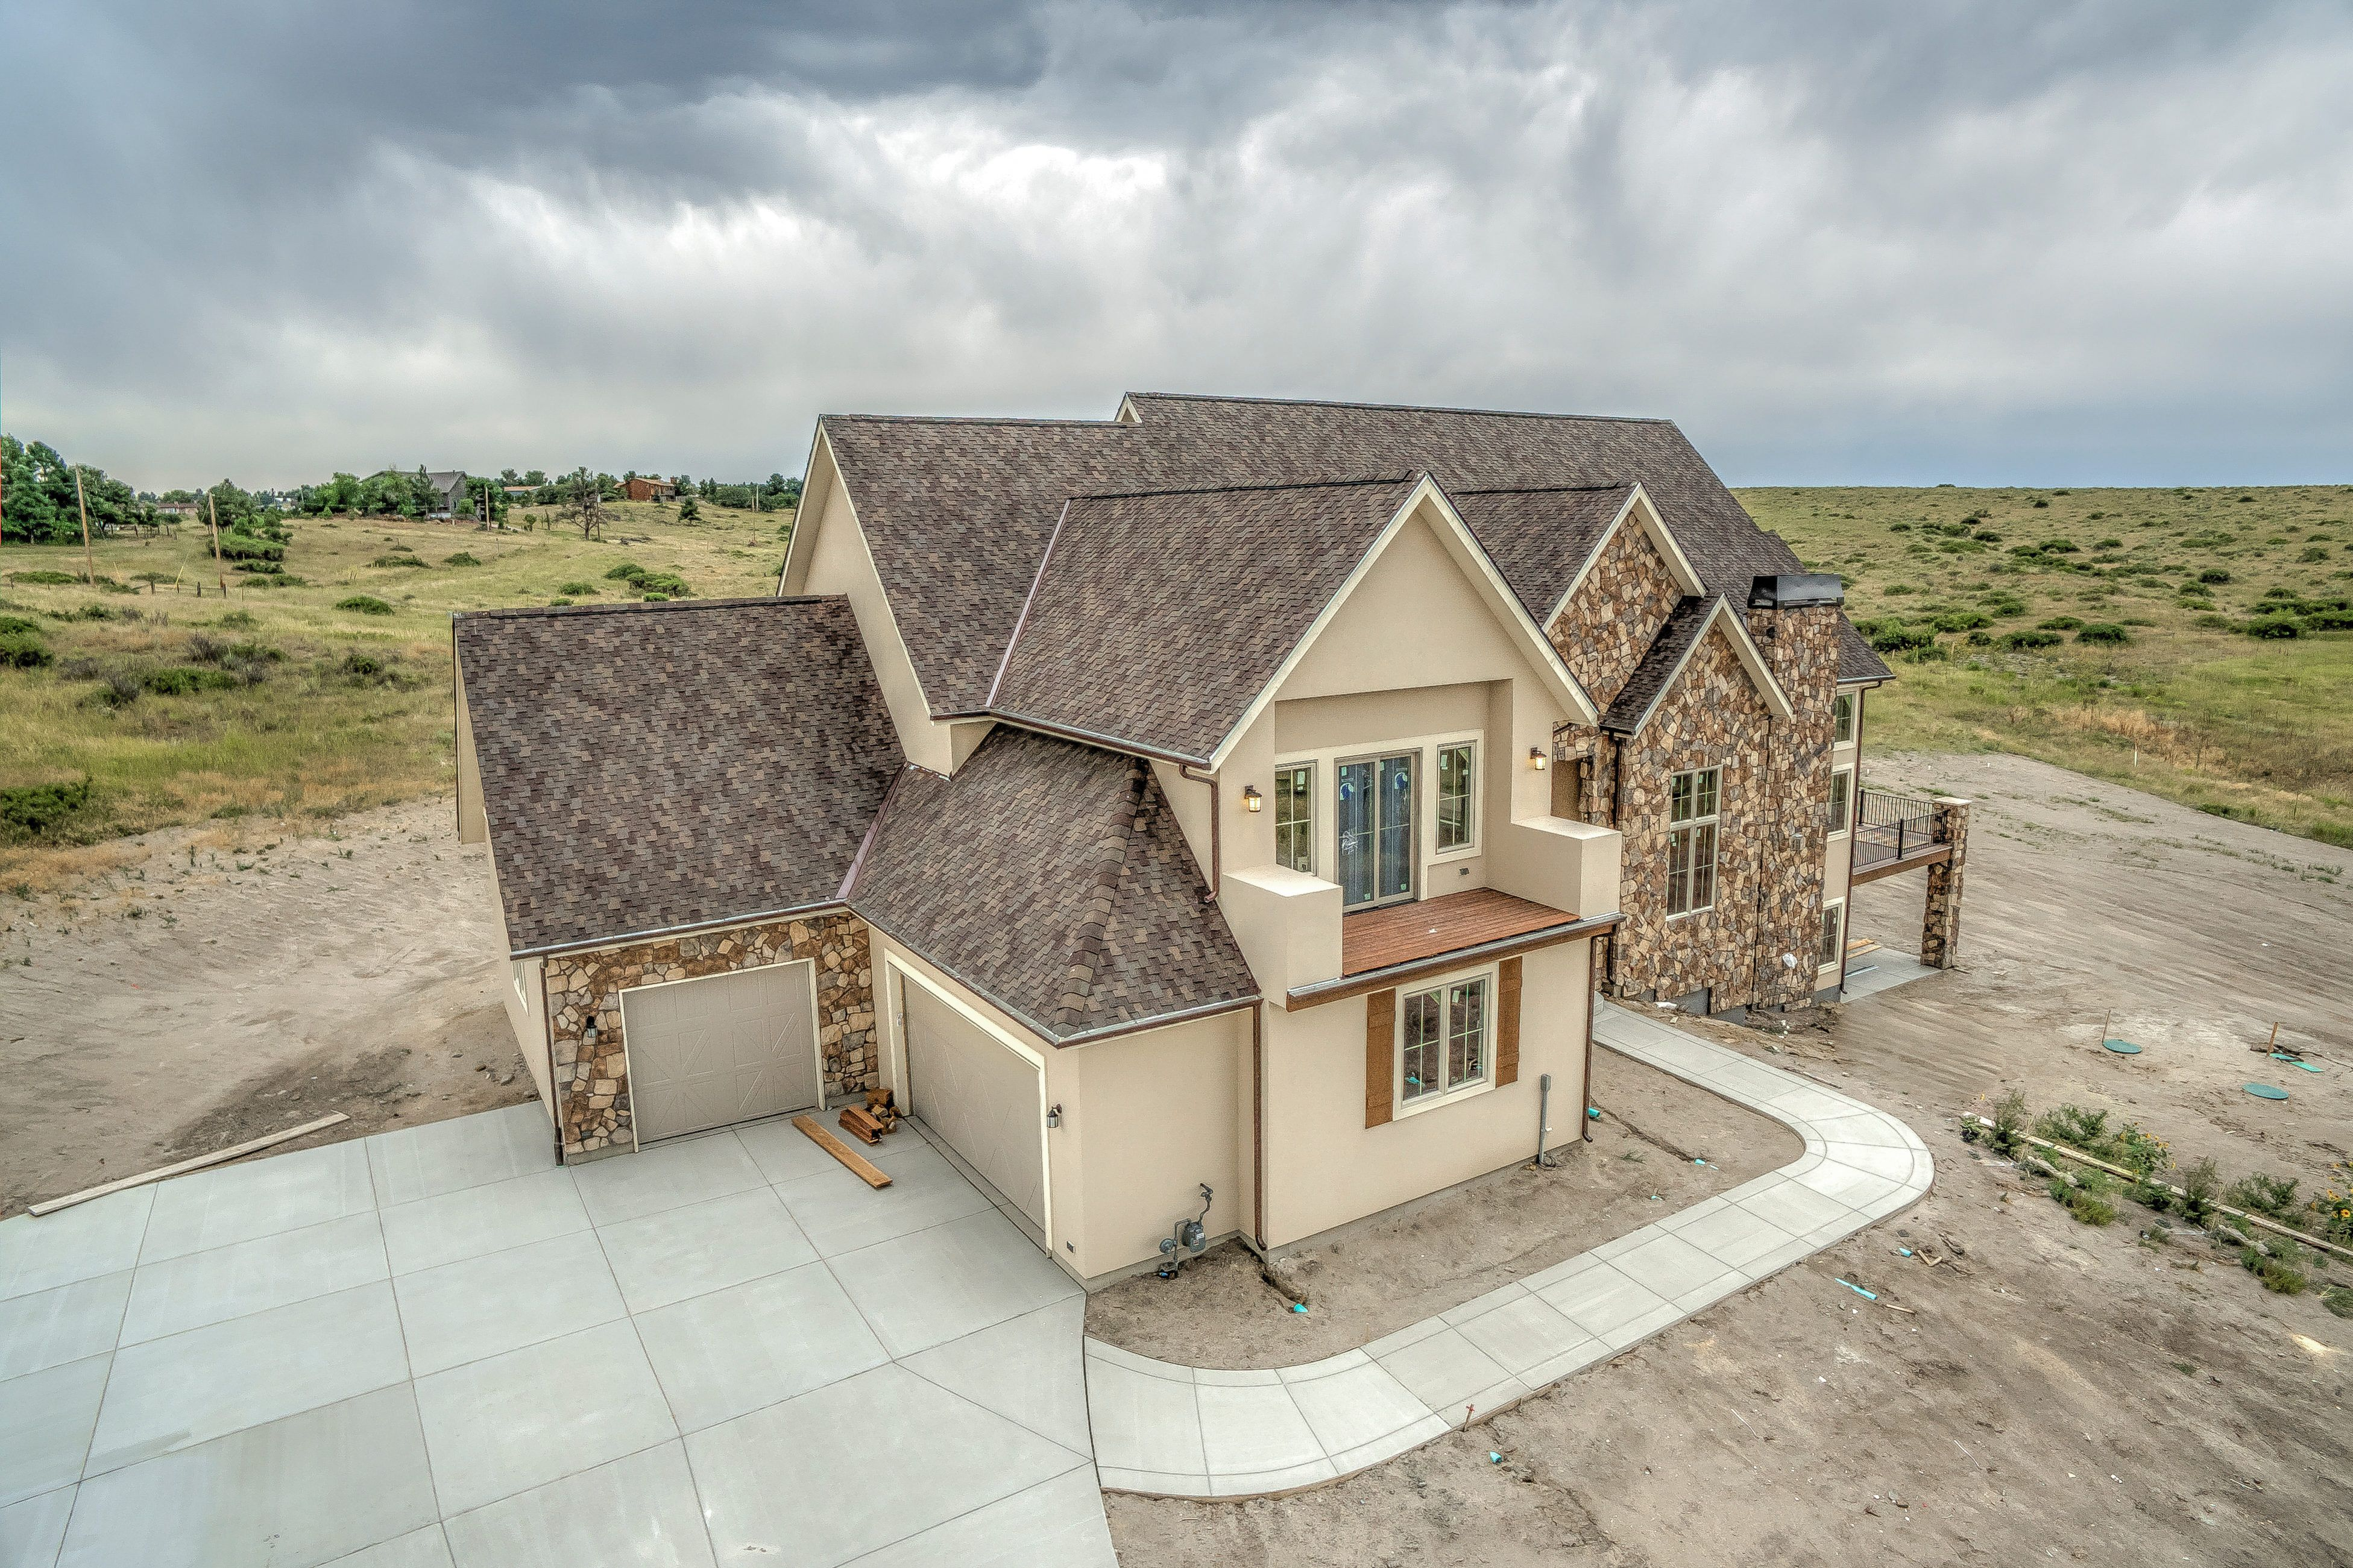 sale homes and for trackhomerock fort springs search all area carson cabins colorado